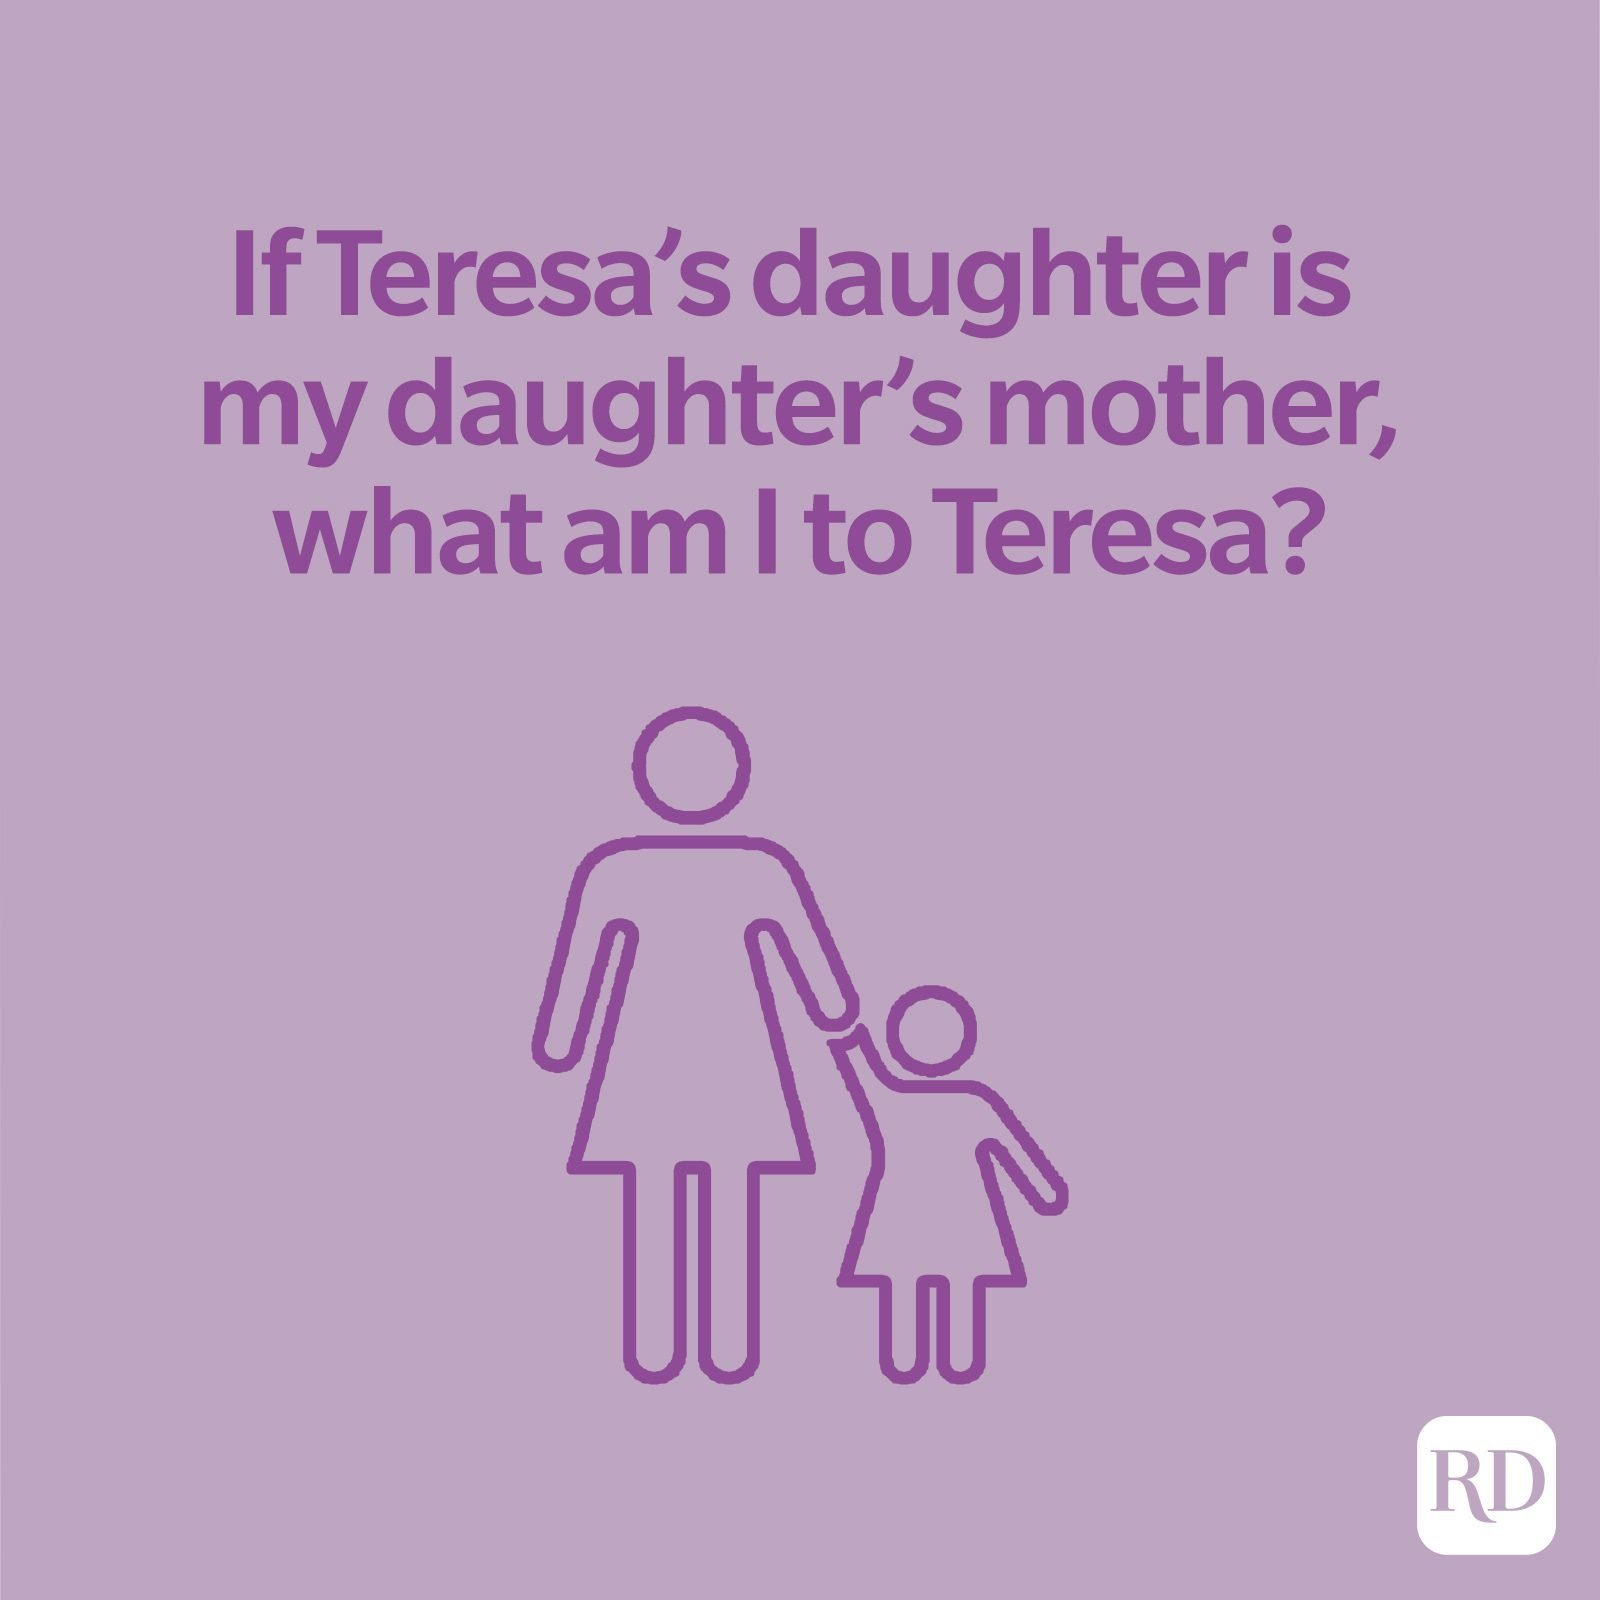 If Teresa's Daughter Is My Mother: Answer to the Viral Riddle